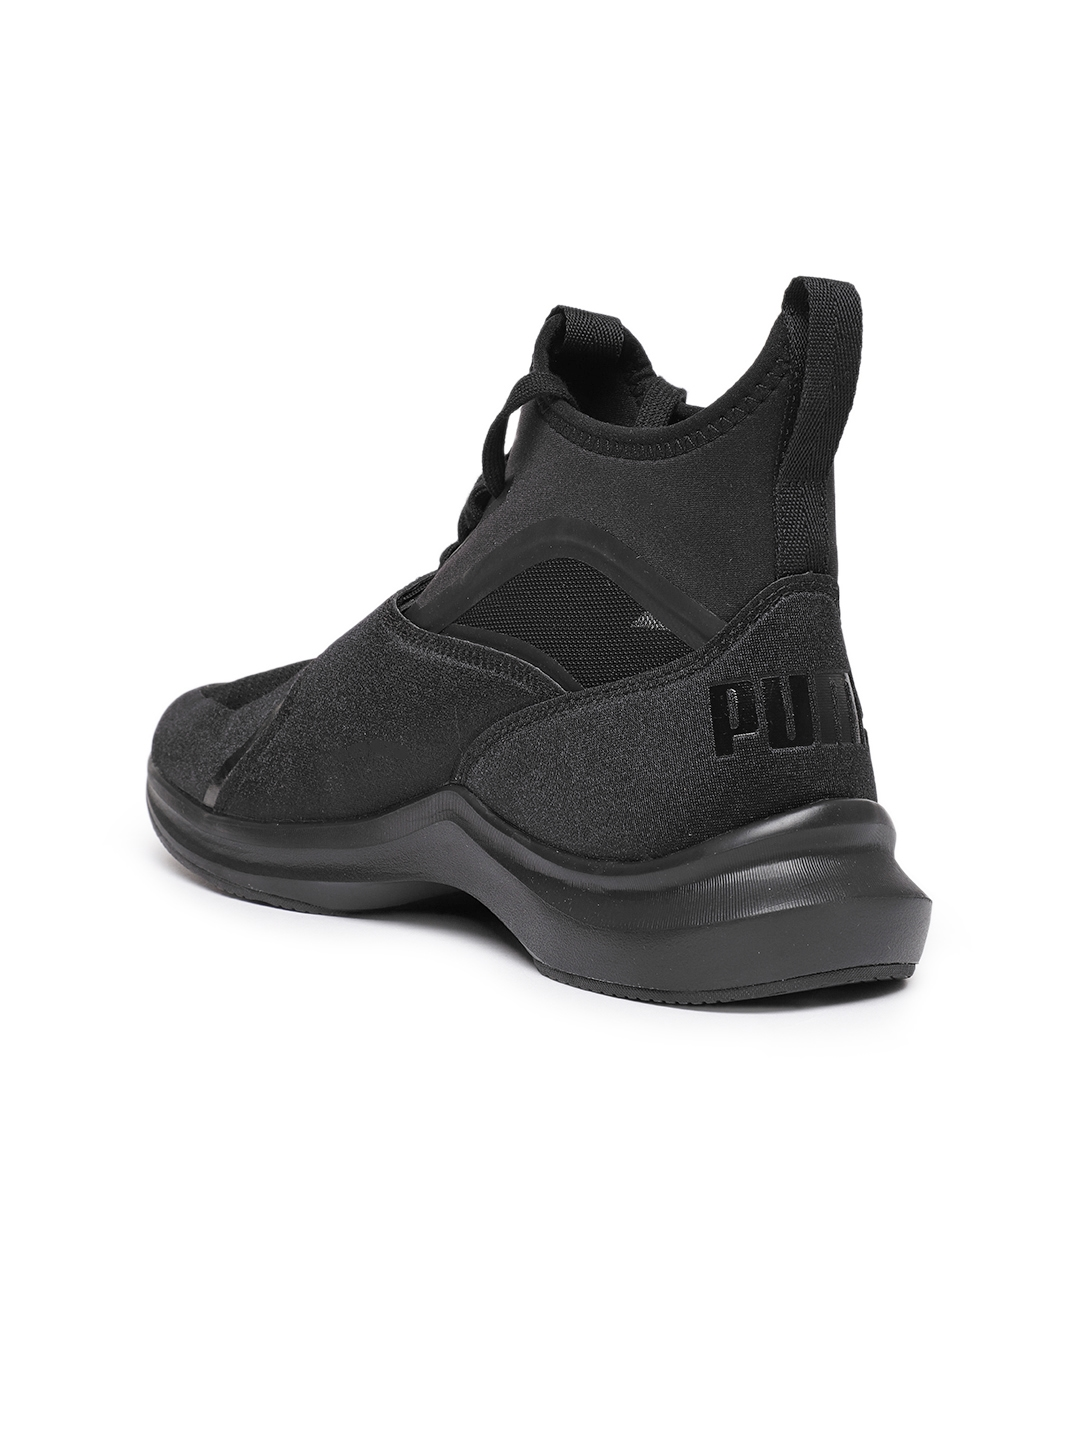 e8d5937e444 Buy Puma Women Black Phenom Wn Mid Top Training Shoes - Sports Shoes ...